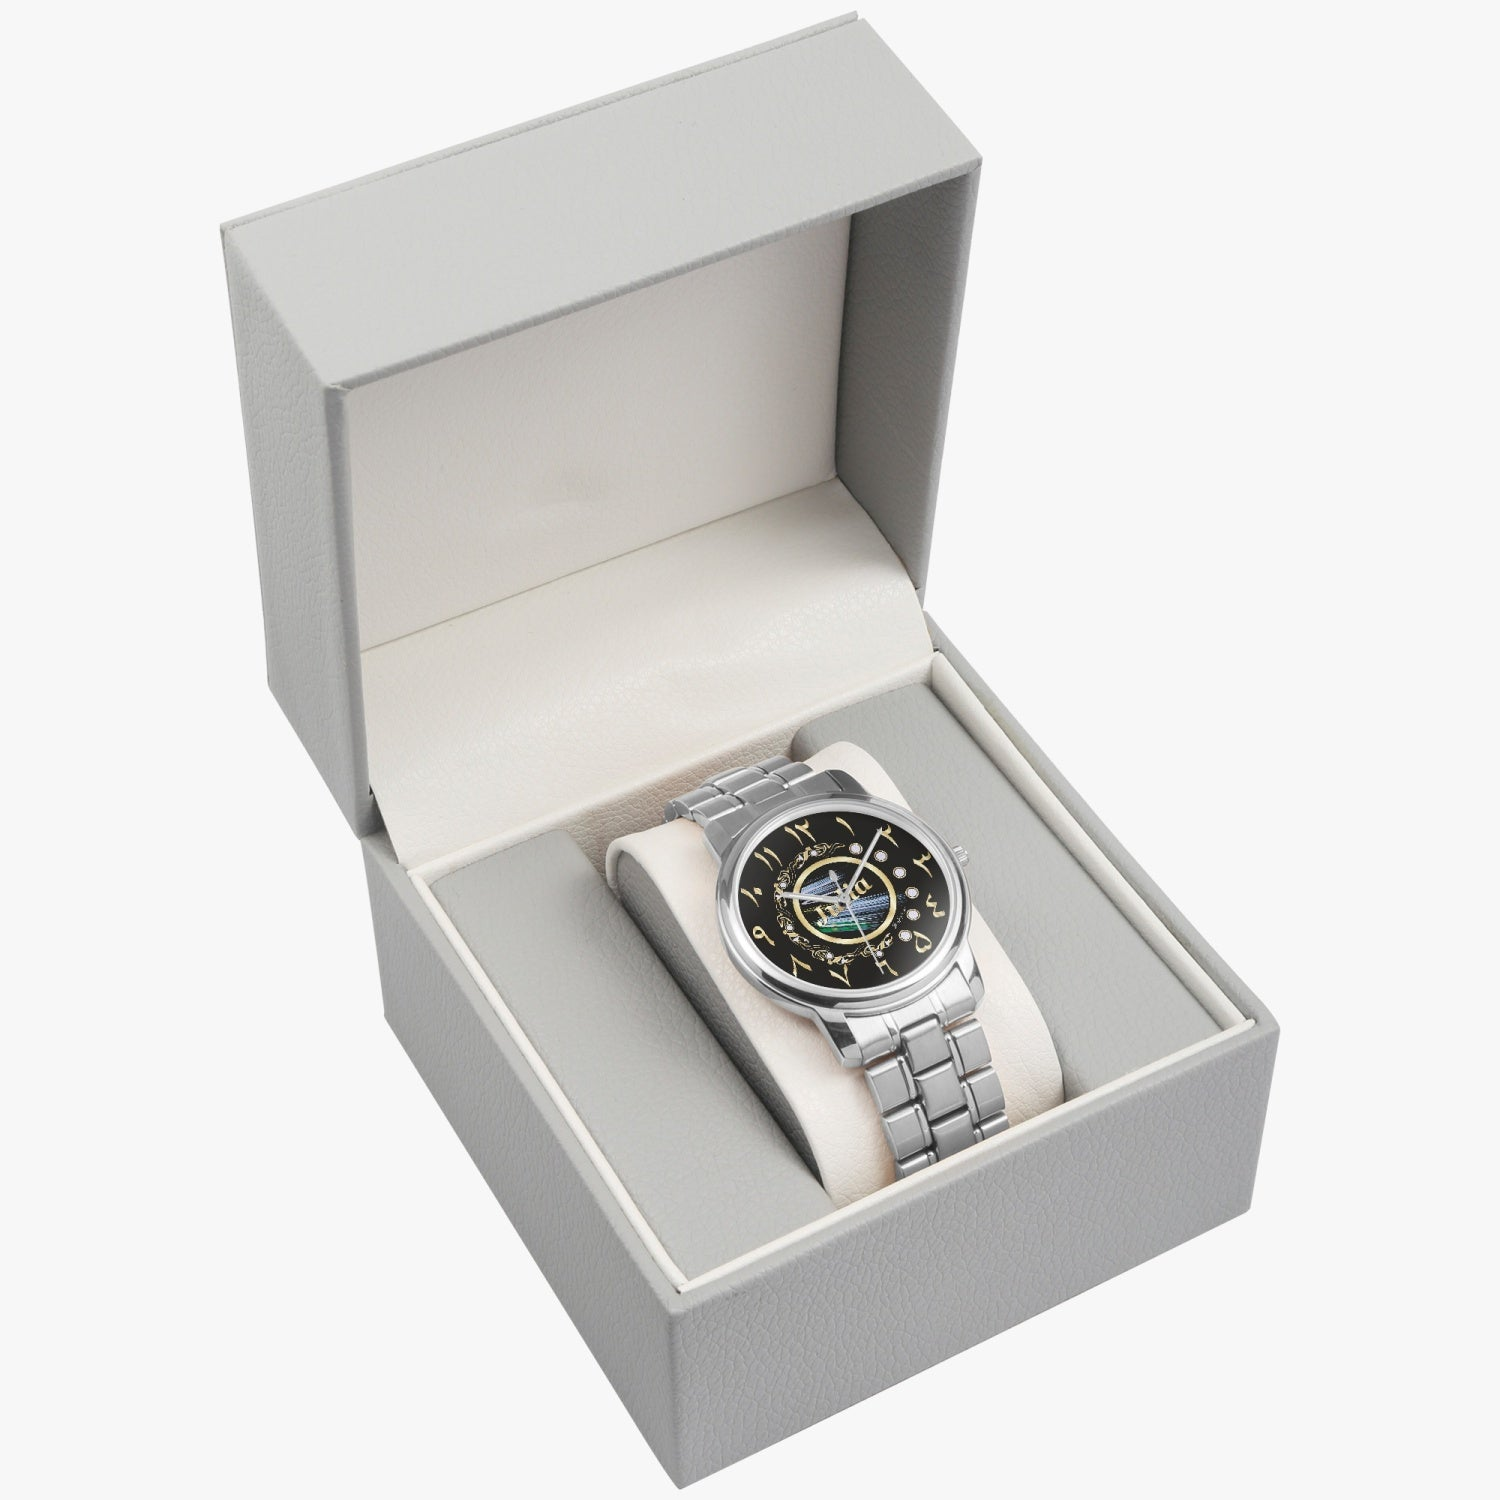 Arabic Stainless Steel Watch By BenJoy